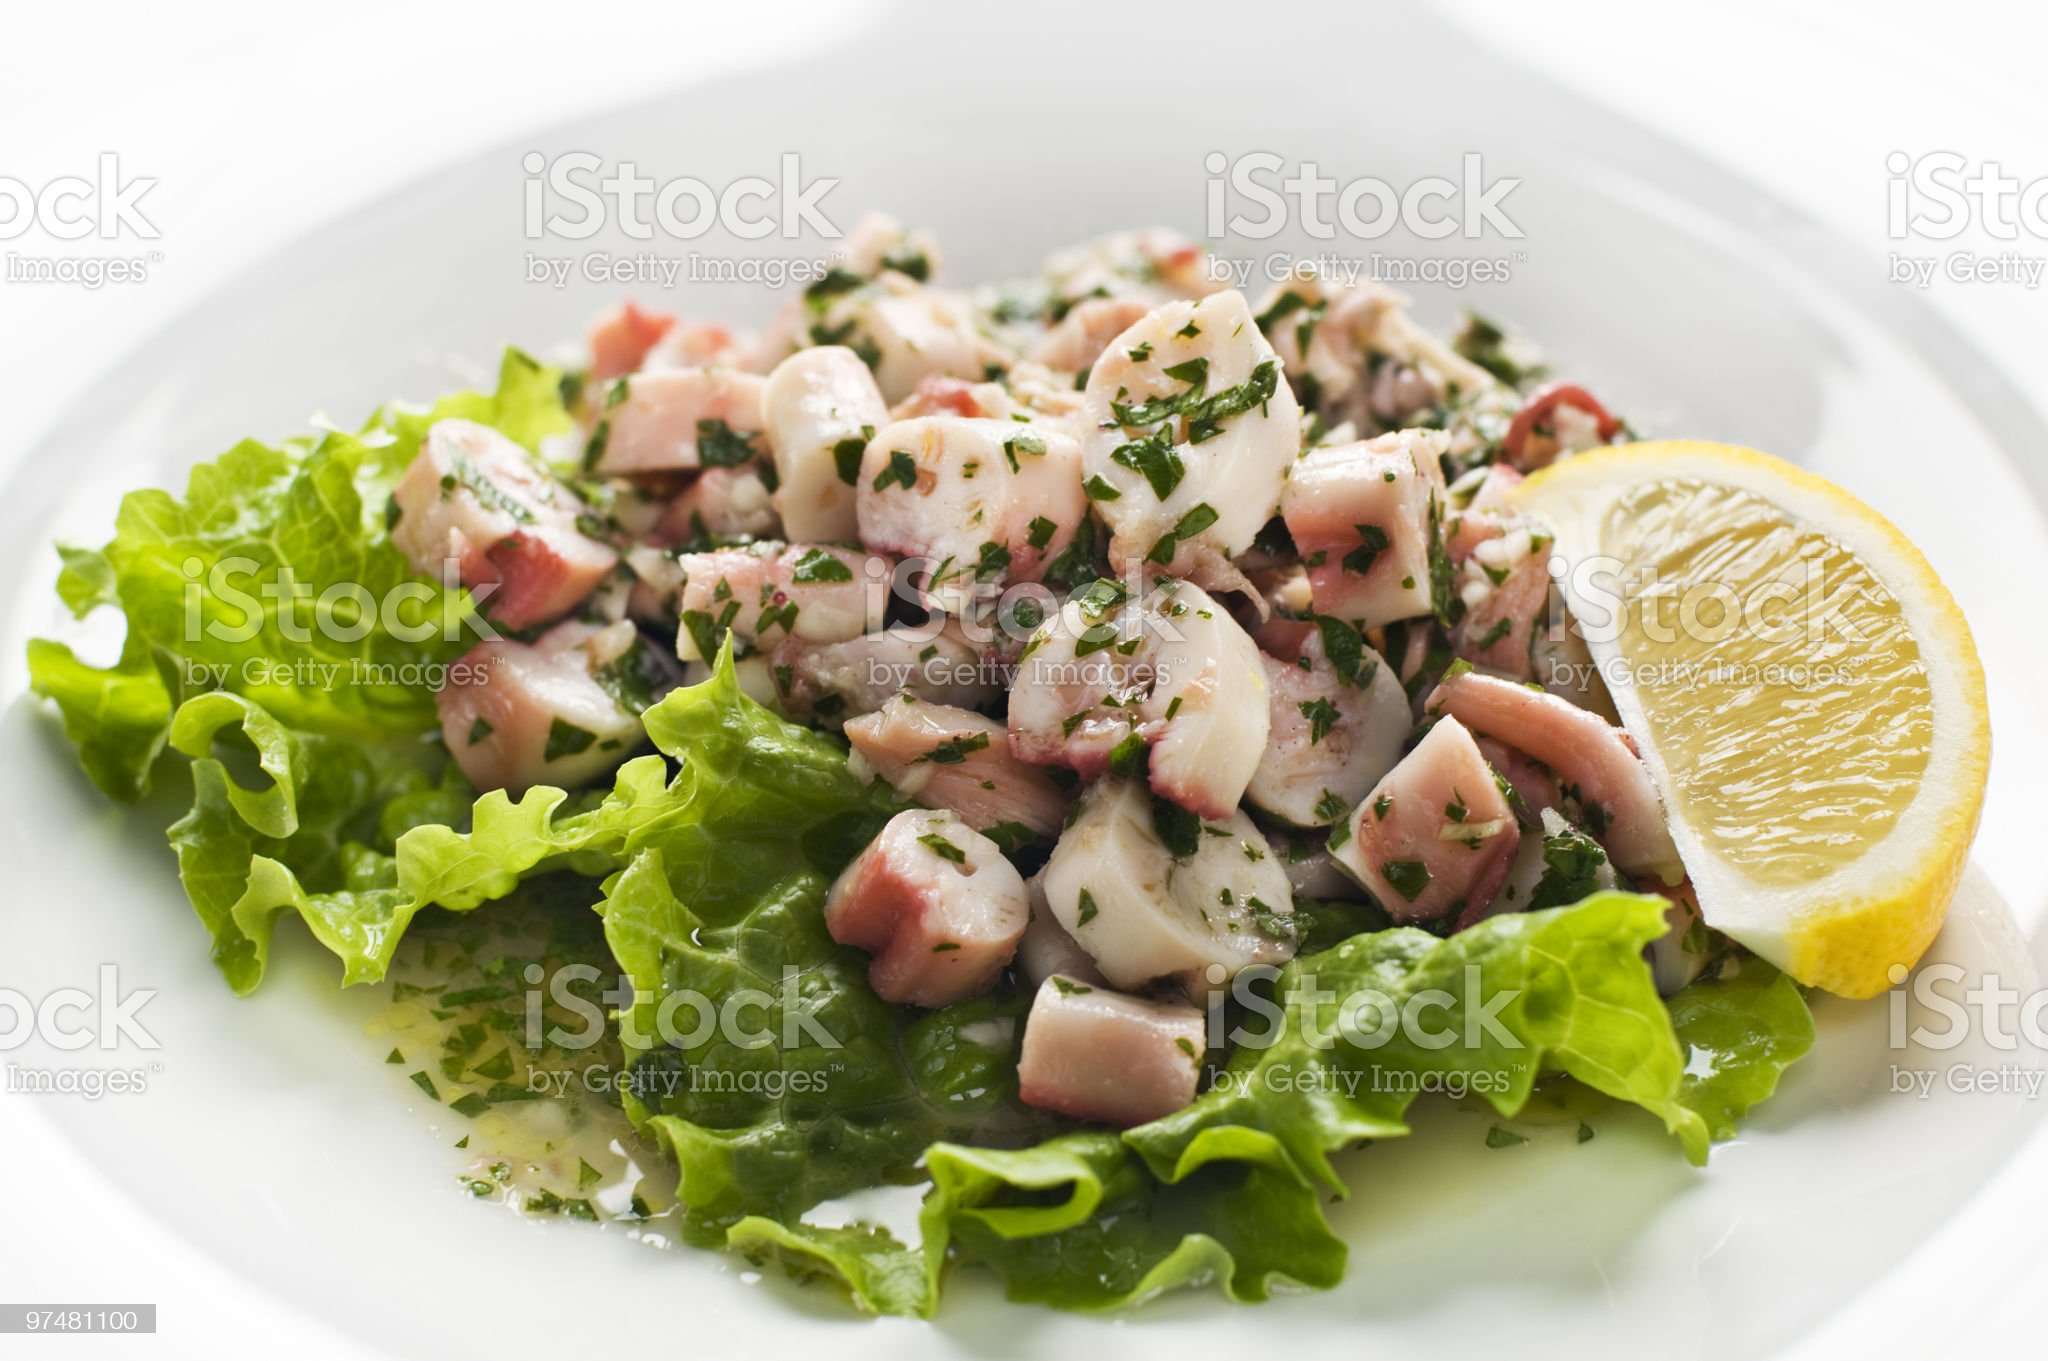 Healthy octopus salad with fresh veggies royalty-free stock photo